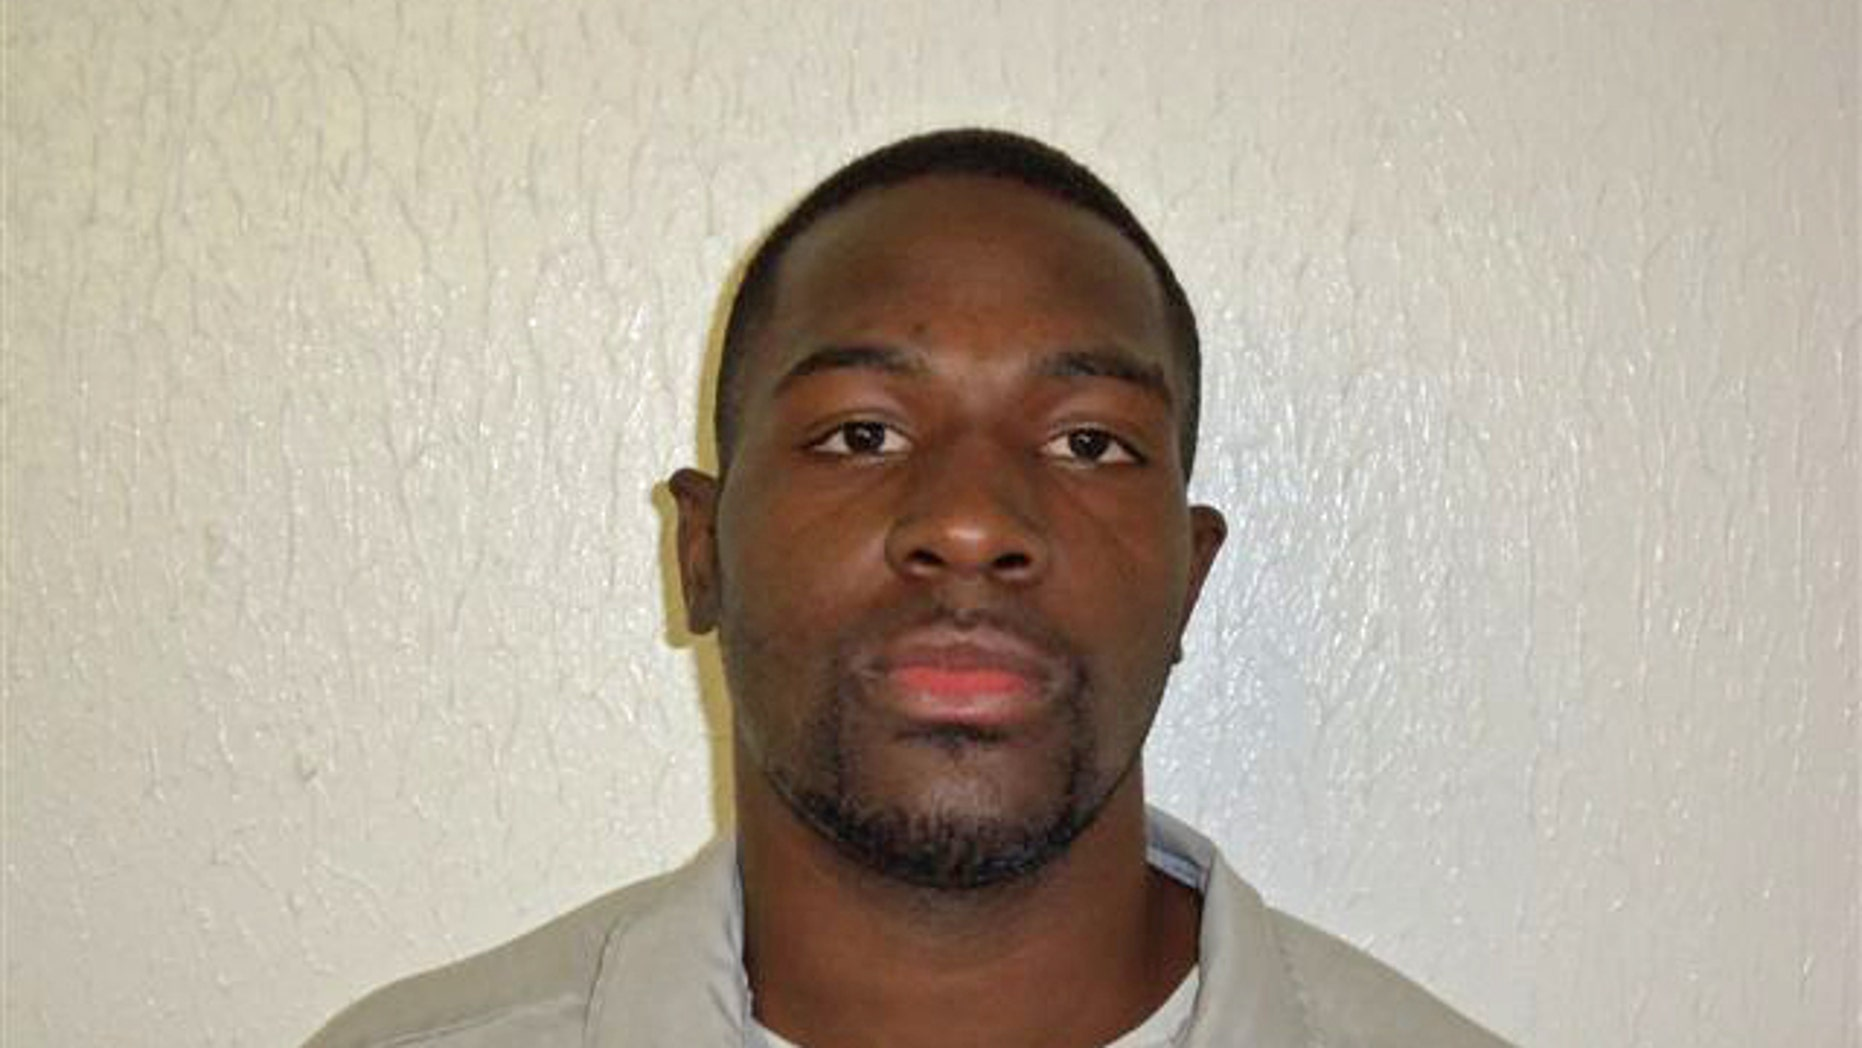 This March 21, 2011 photo provided by the Oklahoma Department of Corrections shows Alton Nolen, of Moore, Okla. Prison records indicate that Nolen, the suspect in the beheading of a co-worker at an Oklahoma food processing plant Thursday, Sept. 25, 2014, had spent time in prison and was on probation for assaulting a police officer. (AP Photo/Oklahoma Department of Corrections)